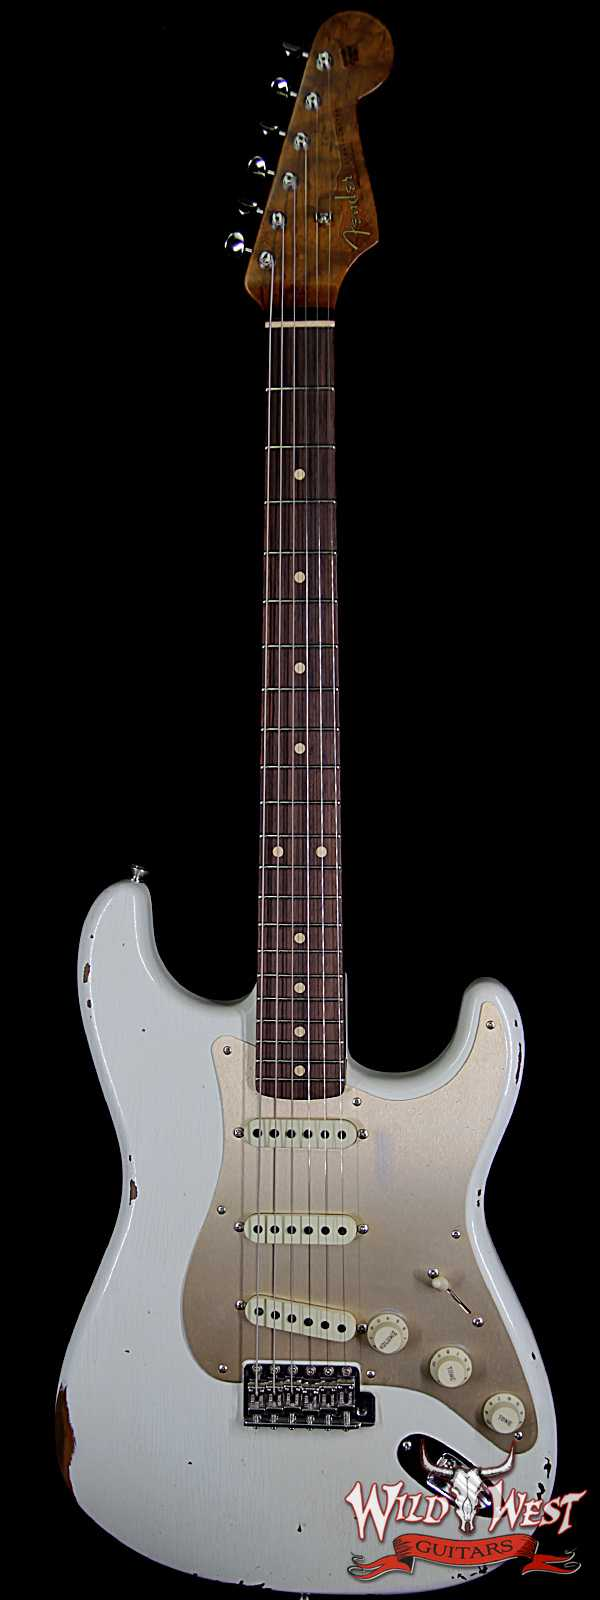 Fender Custom Shop 30th Anniversary Roasted 1960 Stratocaster Relic Birdseye Neck Rosewood Board Aged Olympic White